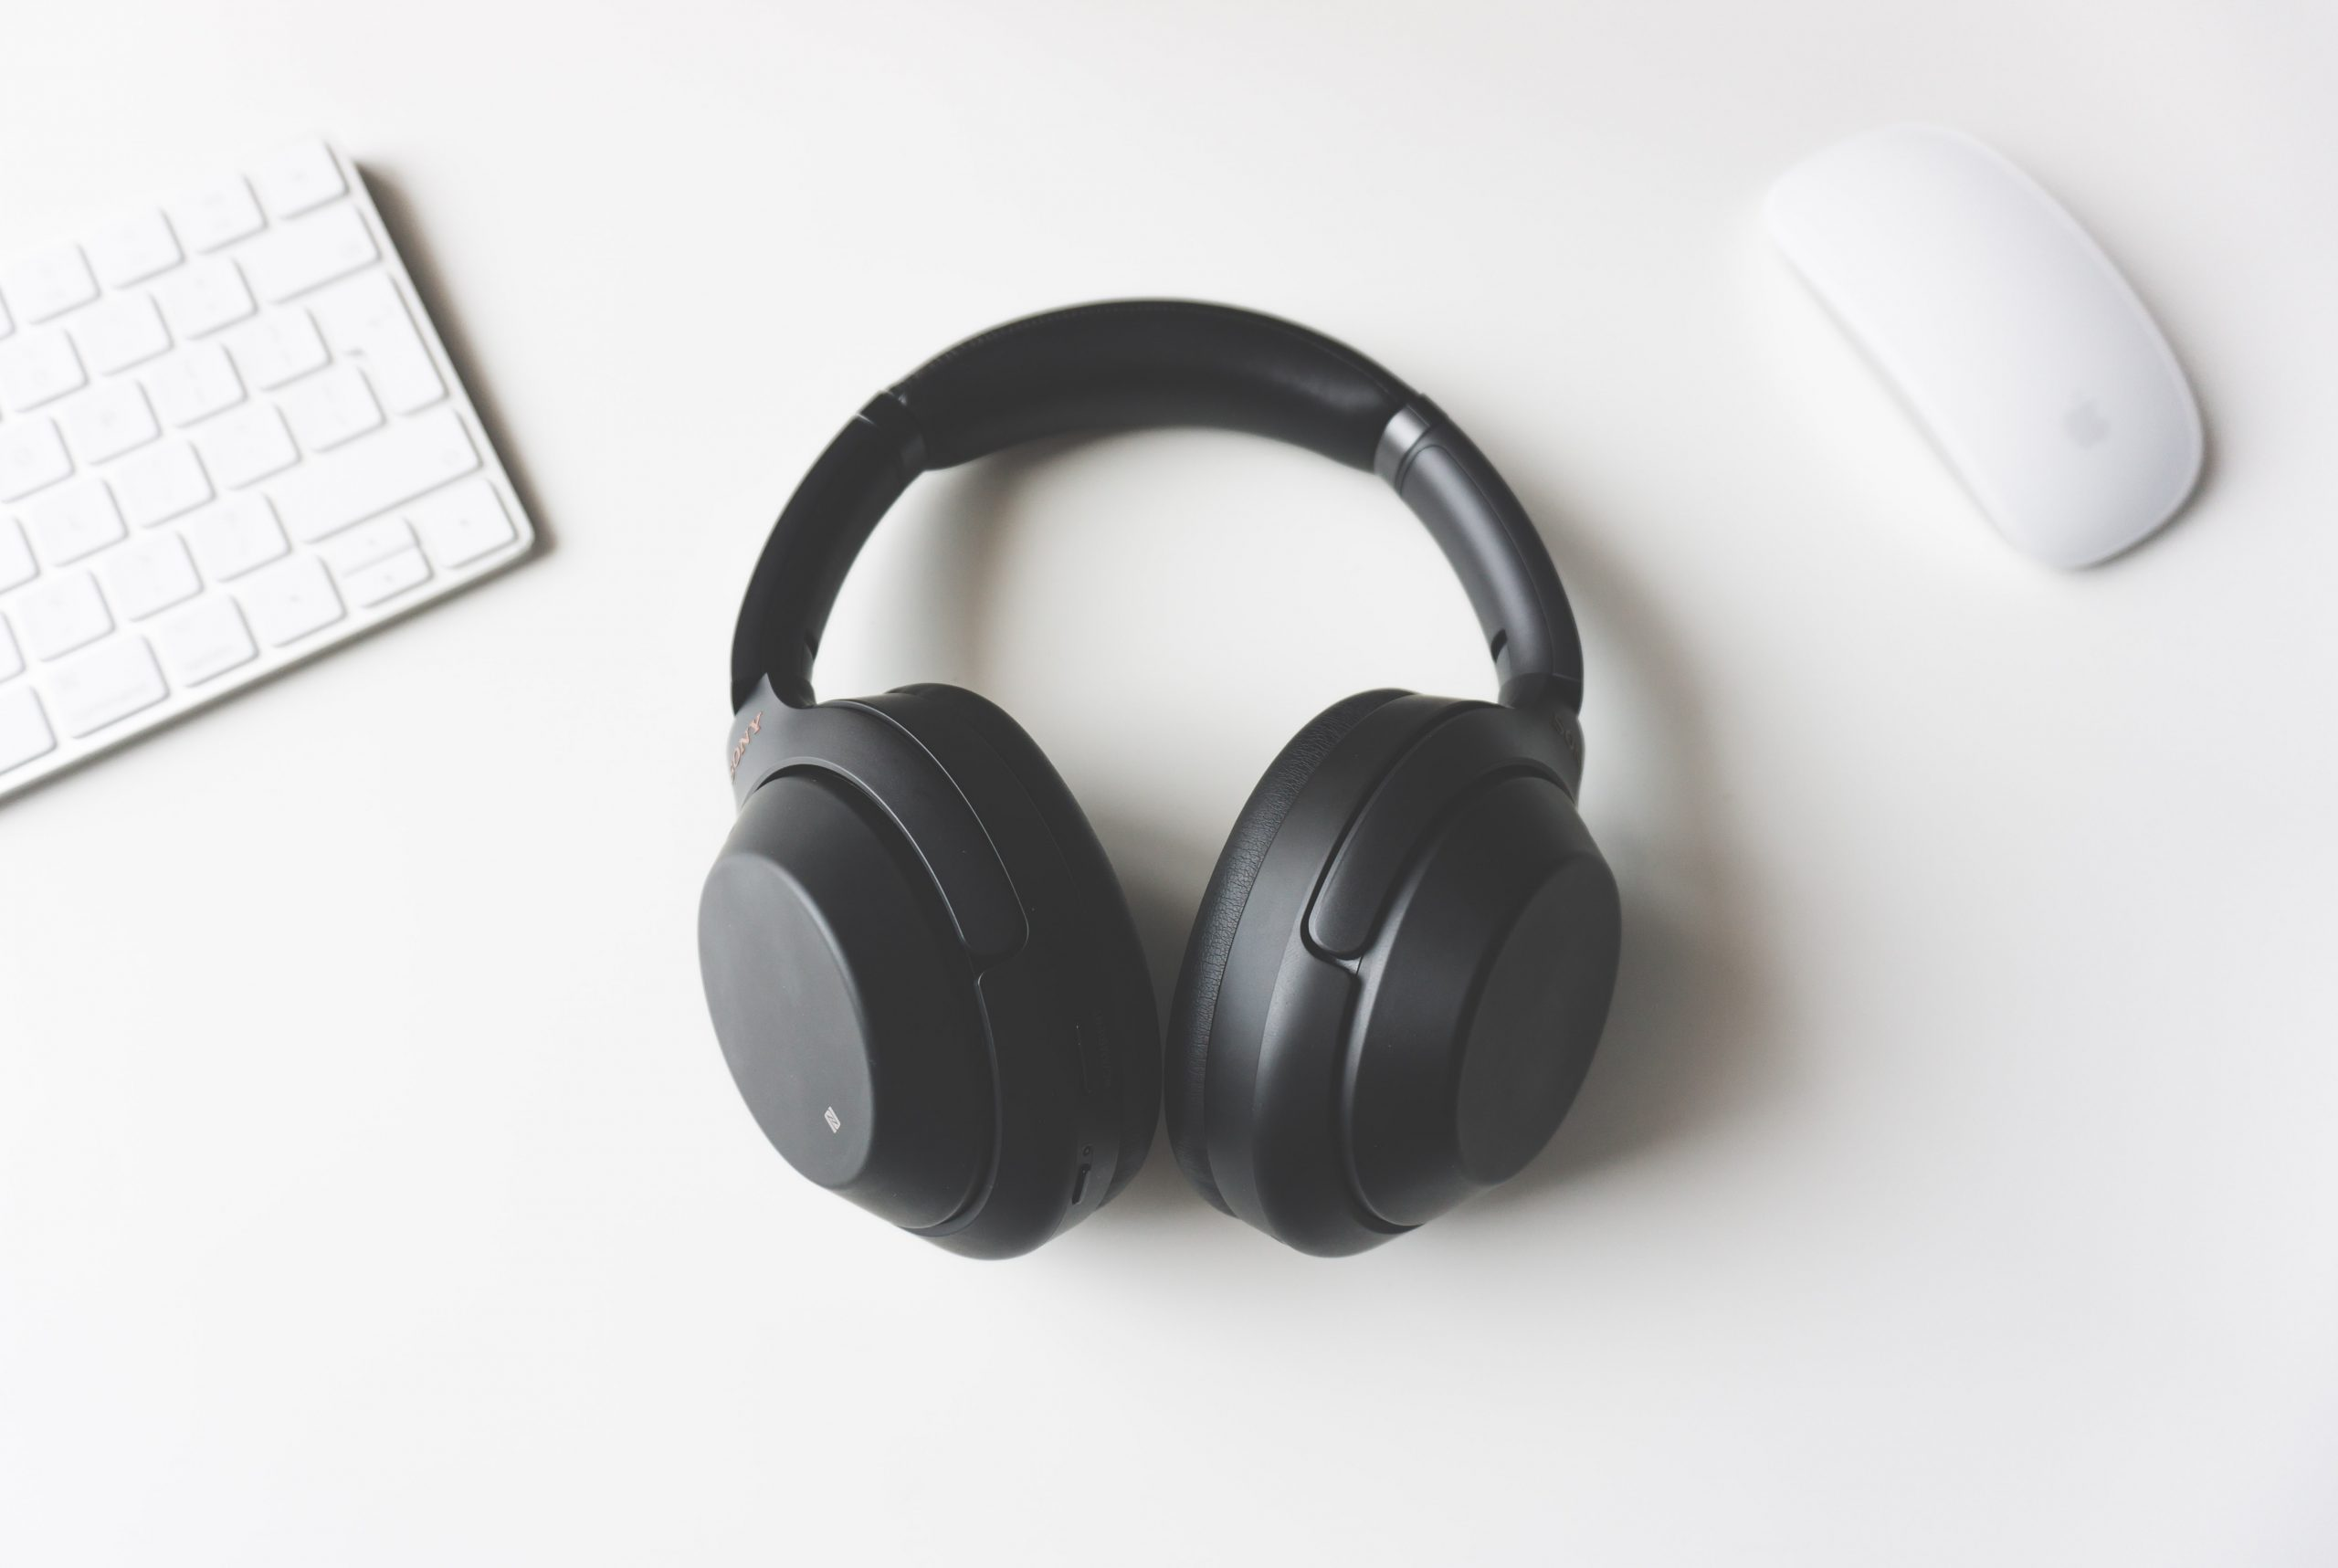 image of black headphones surrounded by a keyboard and mouse on a white background. Photo by Tomasz Gawlowski on Upsplash.